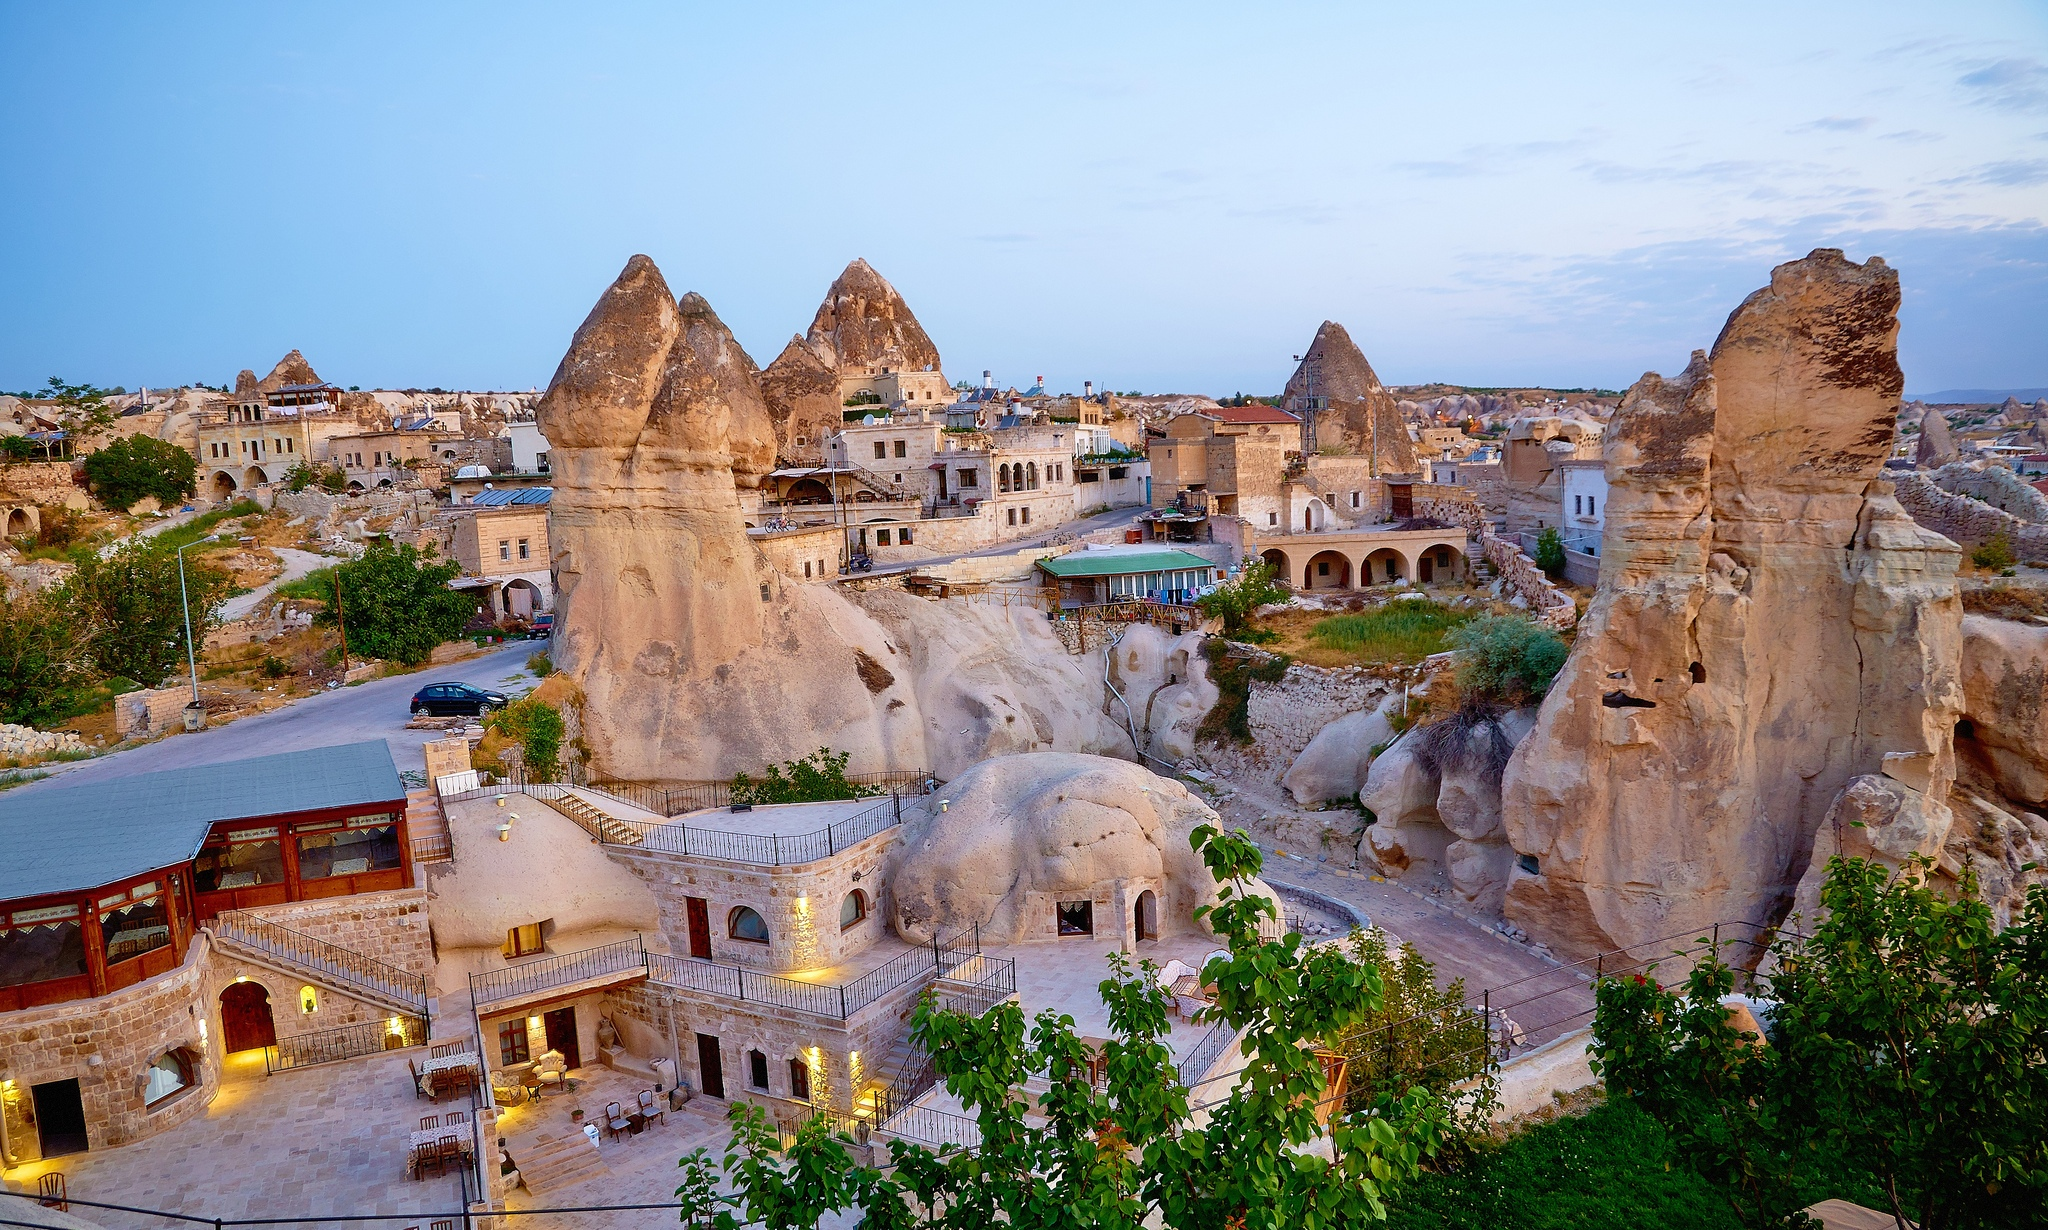 8 Days Turkey Tour by Bus ISTANBUL, CAPPADOCIA, PAMUKKALE, EPHESUS